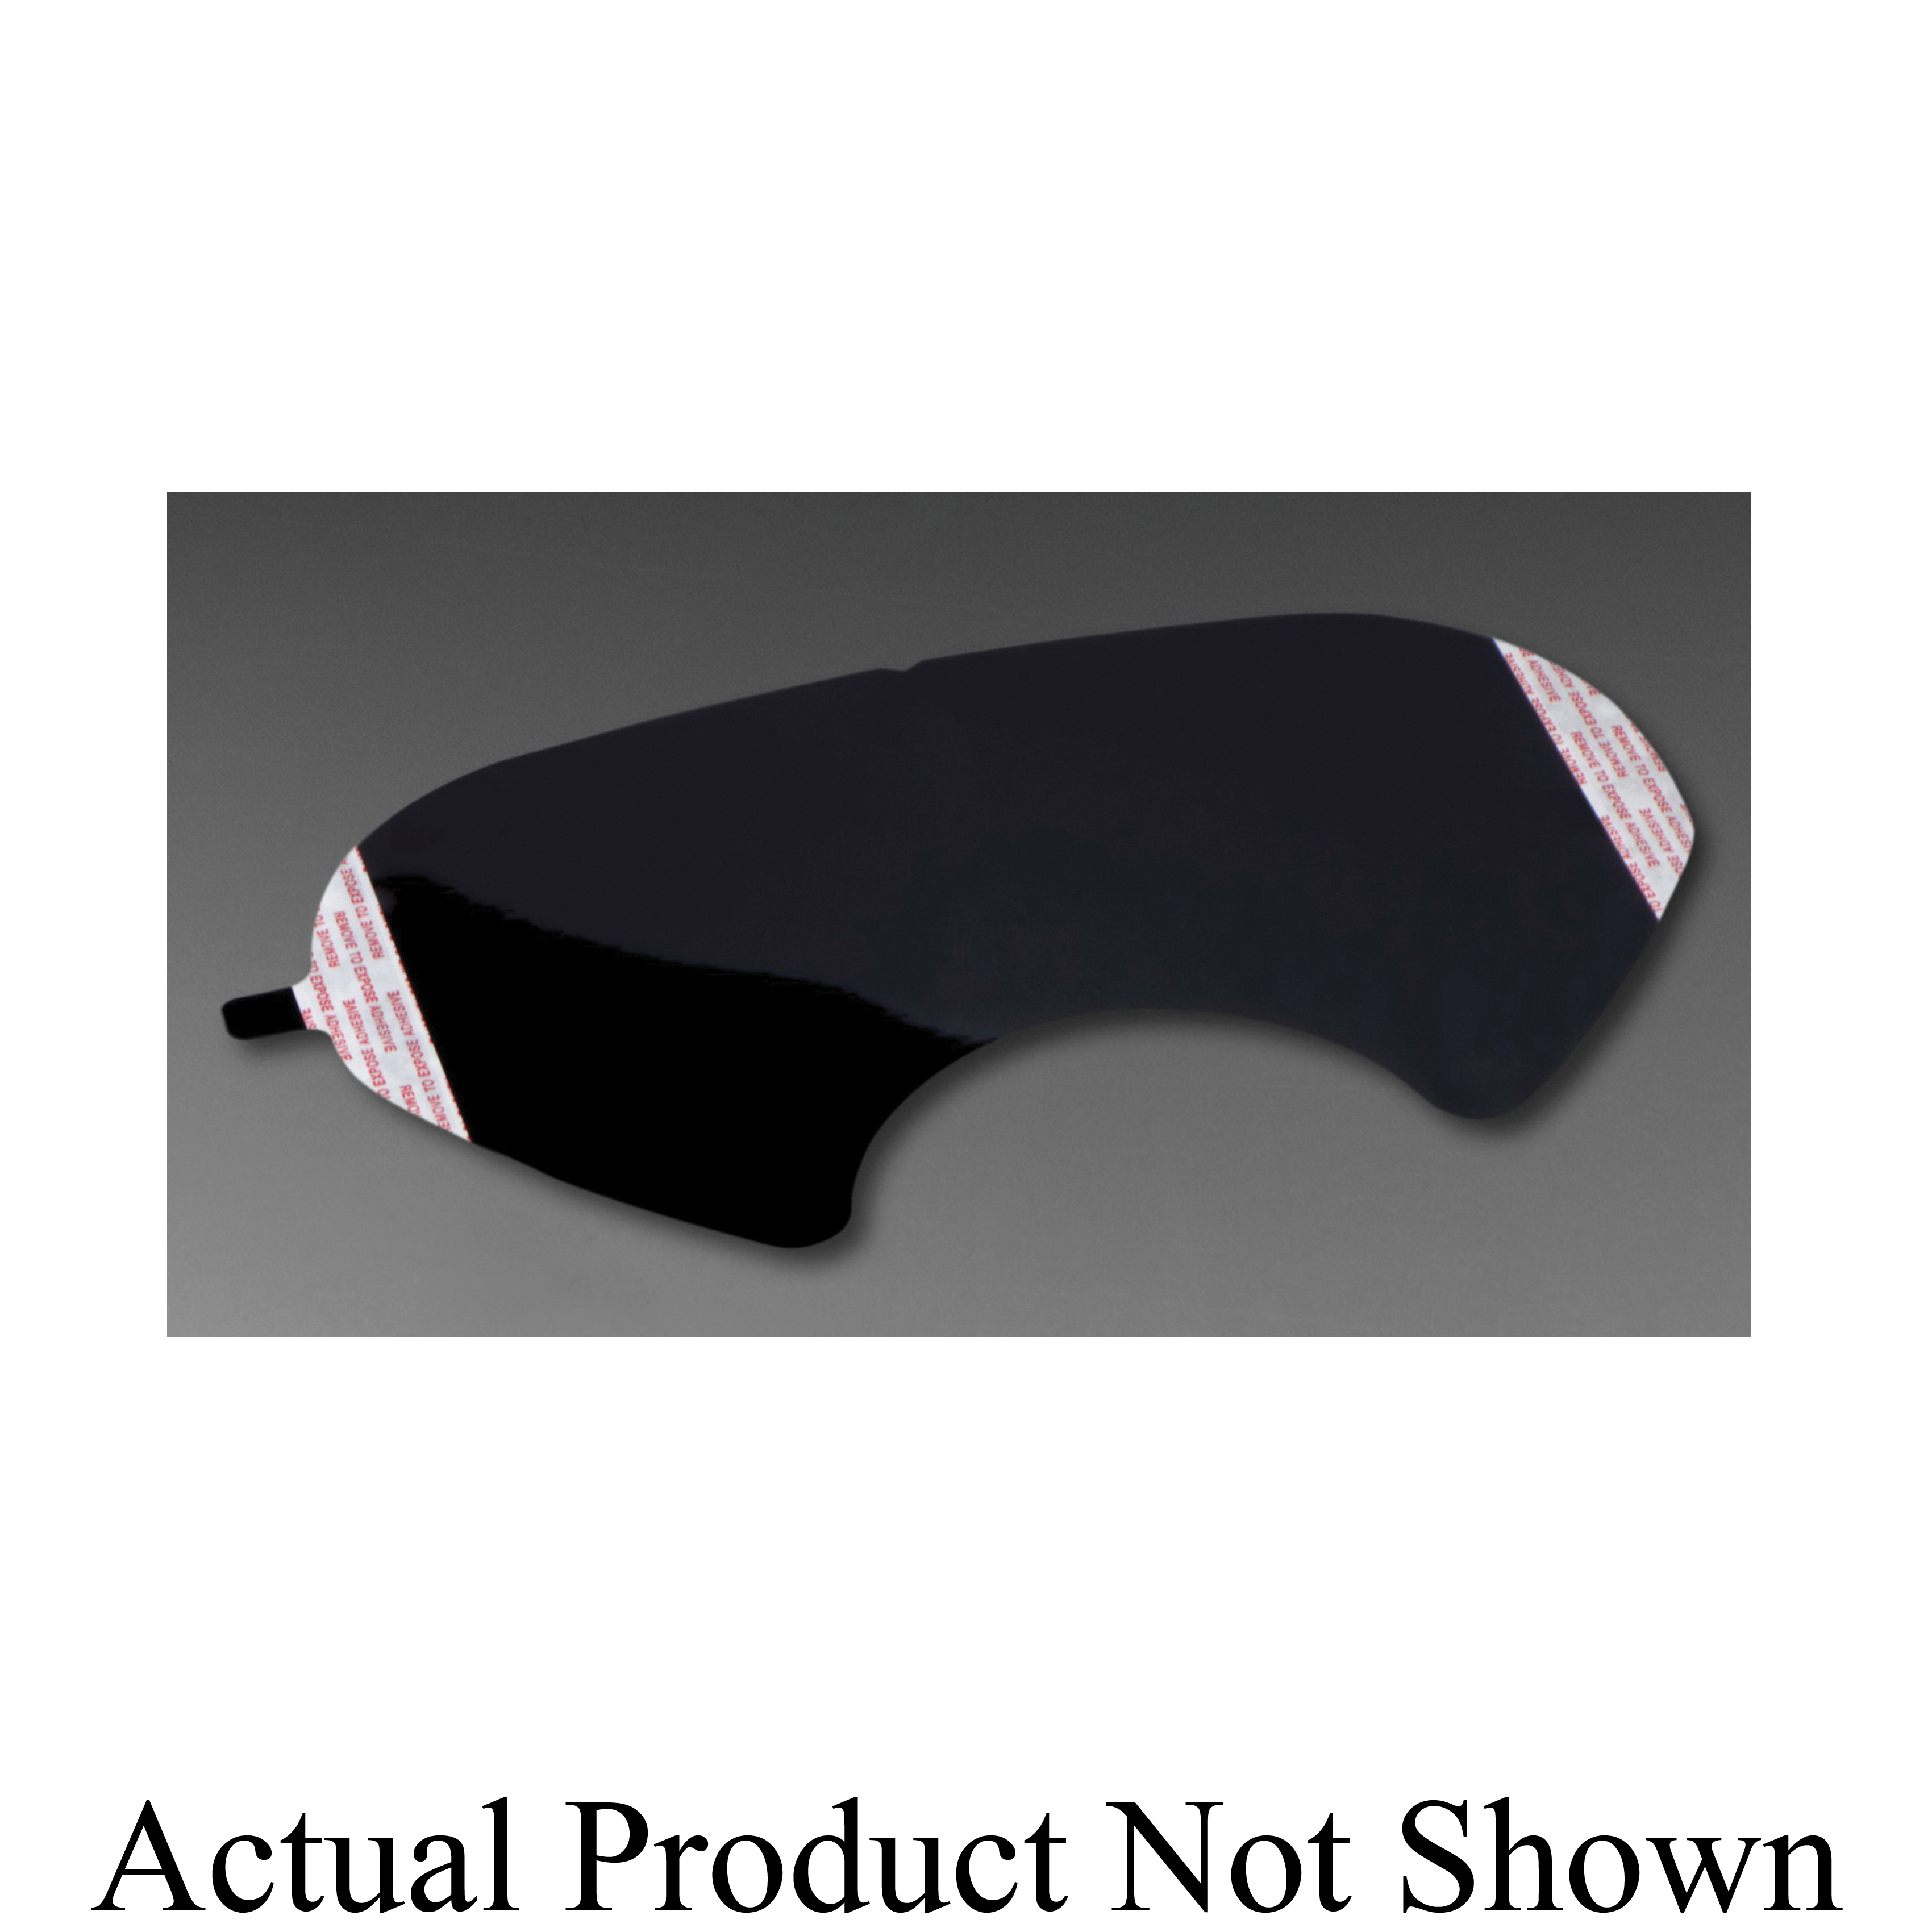 3M™ 051138-66187 Tinted Lens Cover, For Use With Full Facepiece 6000 Series Respirators, Black, Specifications Met: OSHA 29 CFR 1910.132